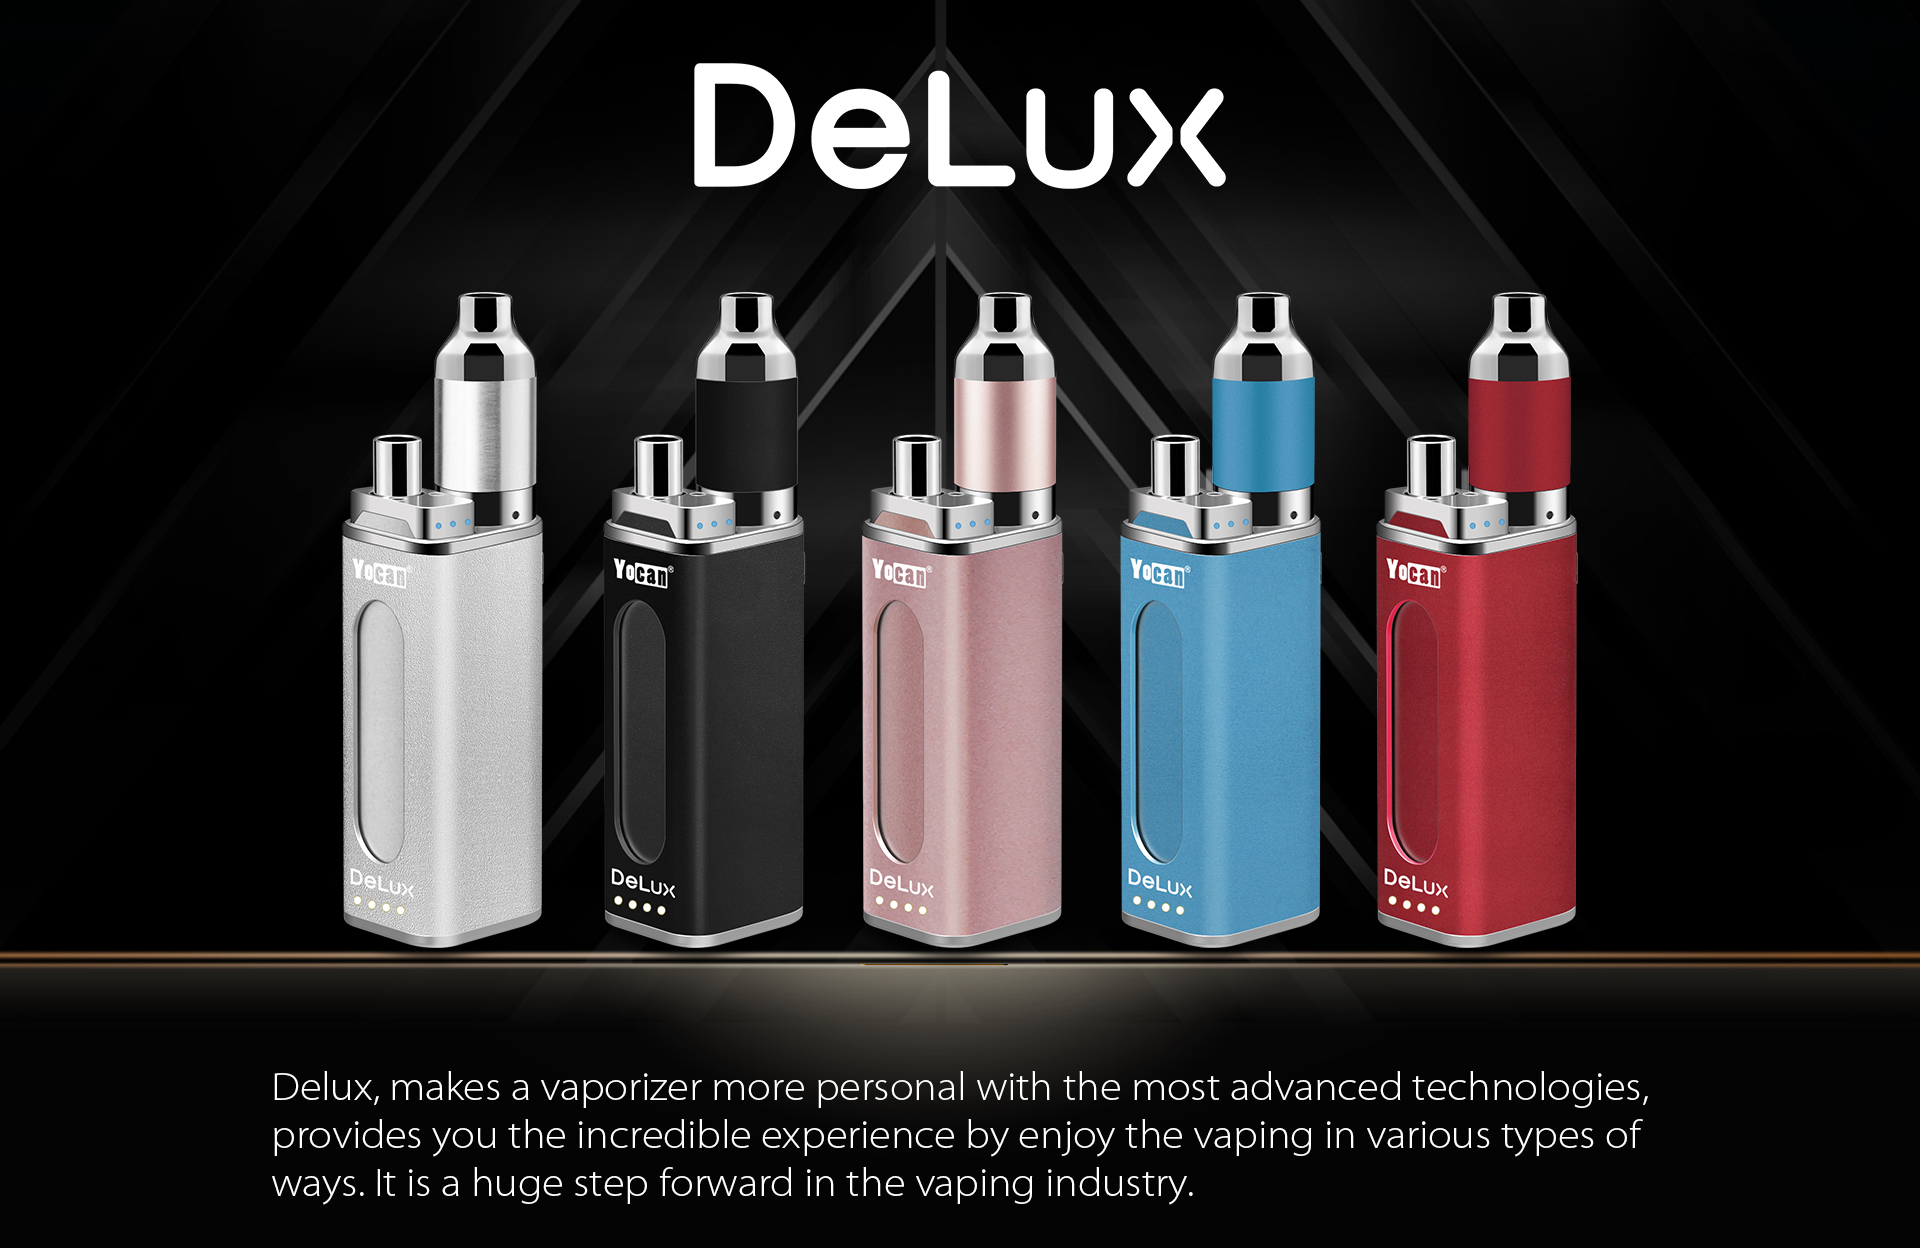 Yocan DeLux makes a vaporizer more personal with the most advanced technologies.